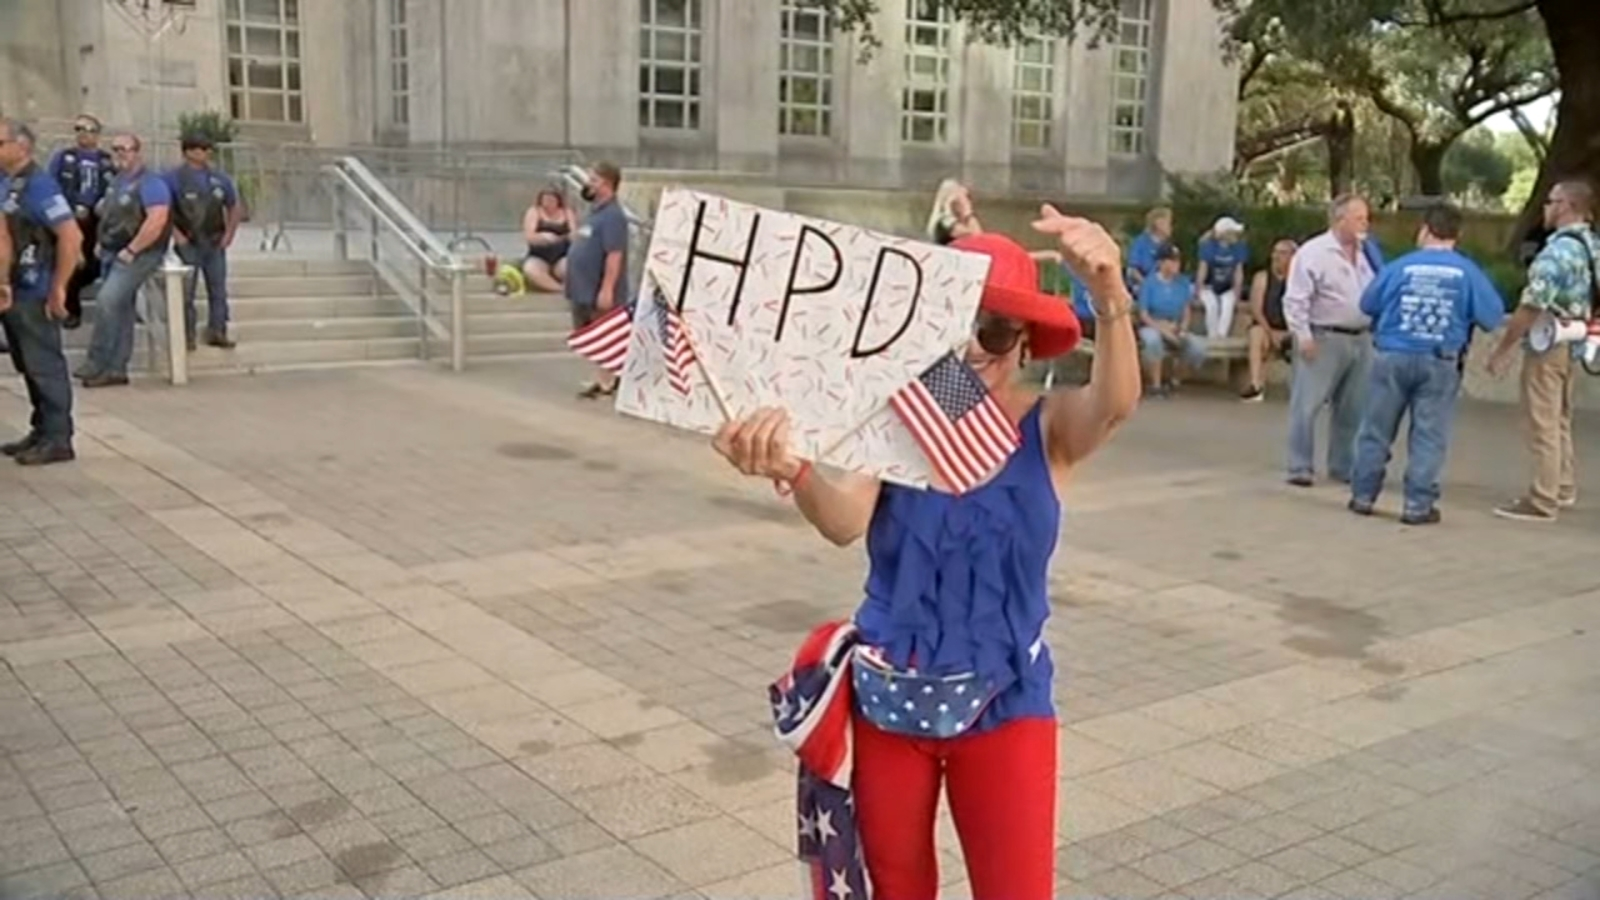 Demonstrators gather at City Hall in Houston for police appreciation rally